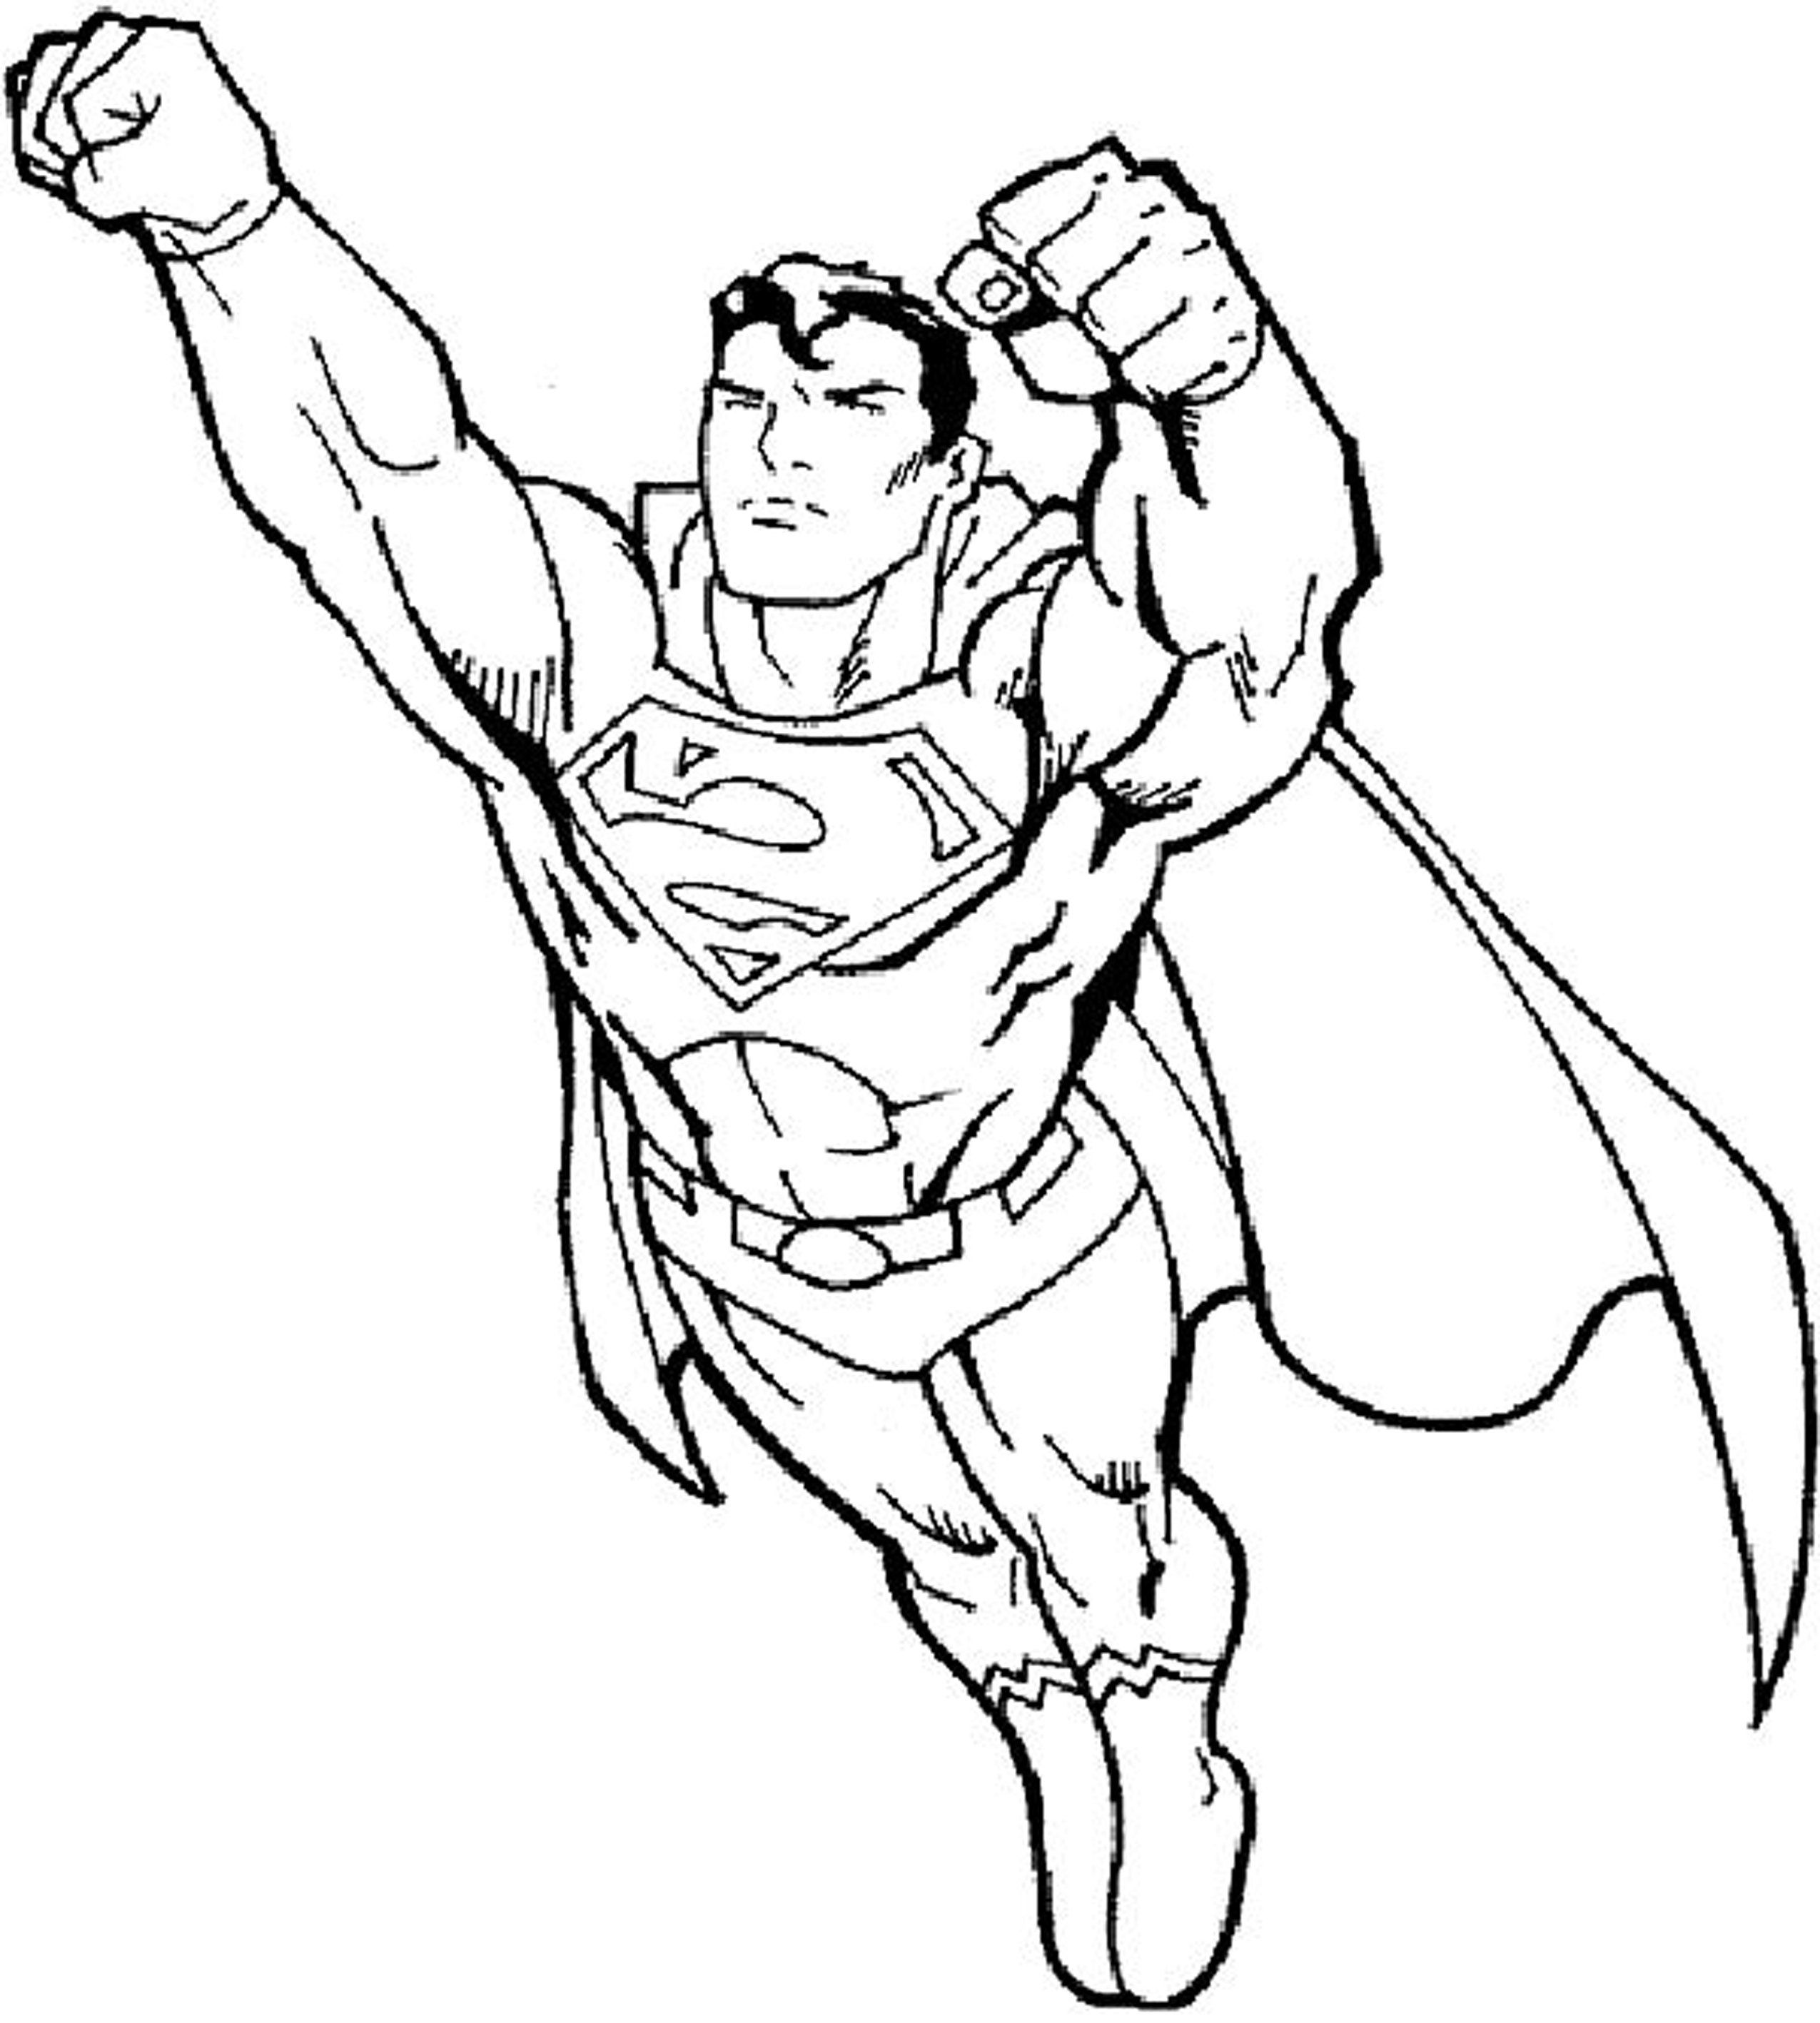 Free Coloring Pages For Boys Superman Printable Kids Colouring Pages Superhero Coloring Superhero Coloring Pages Superman Coloring Pages